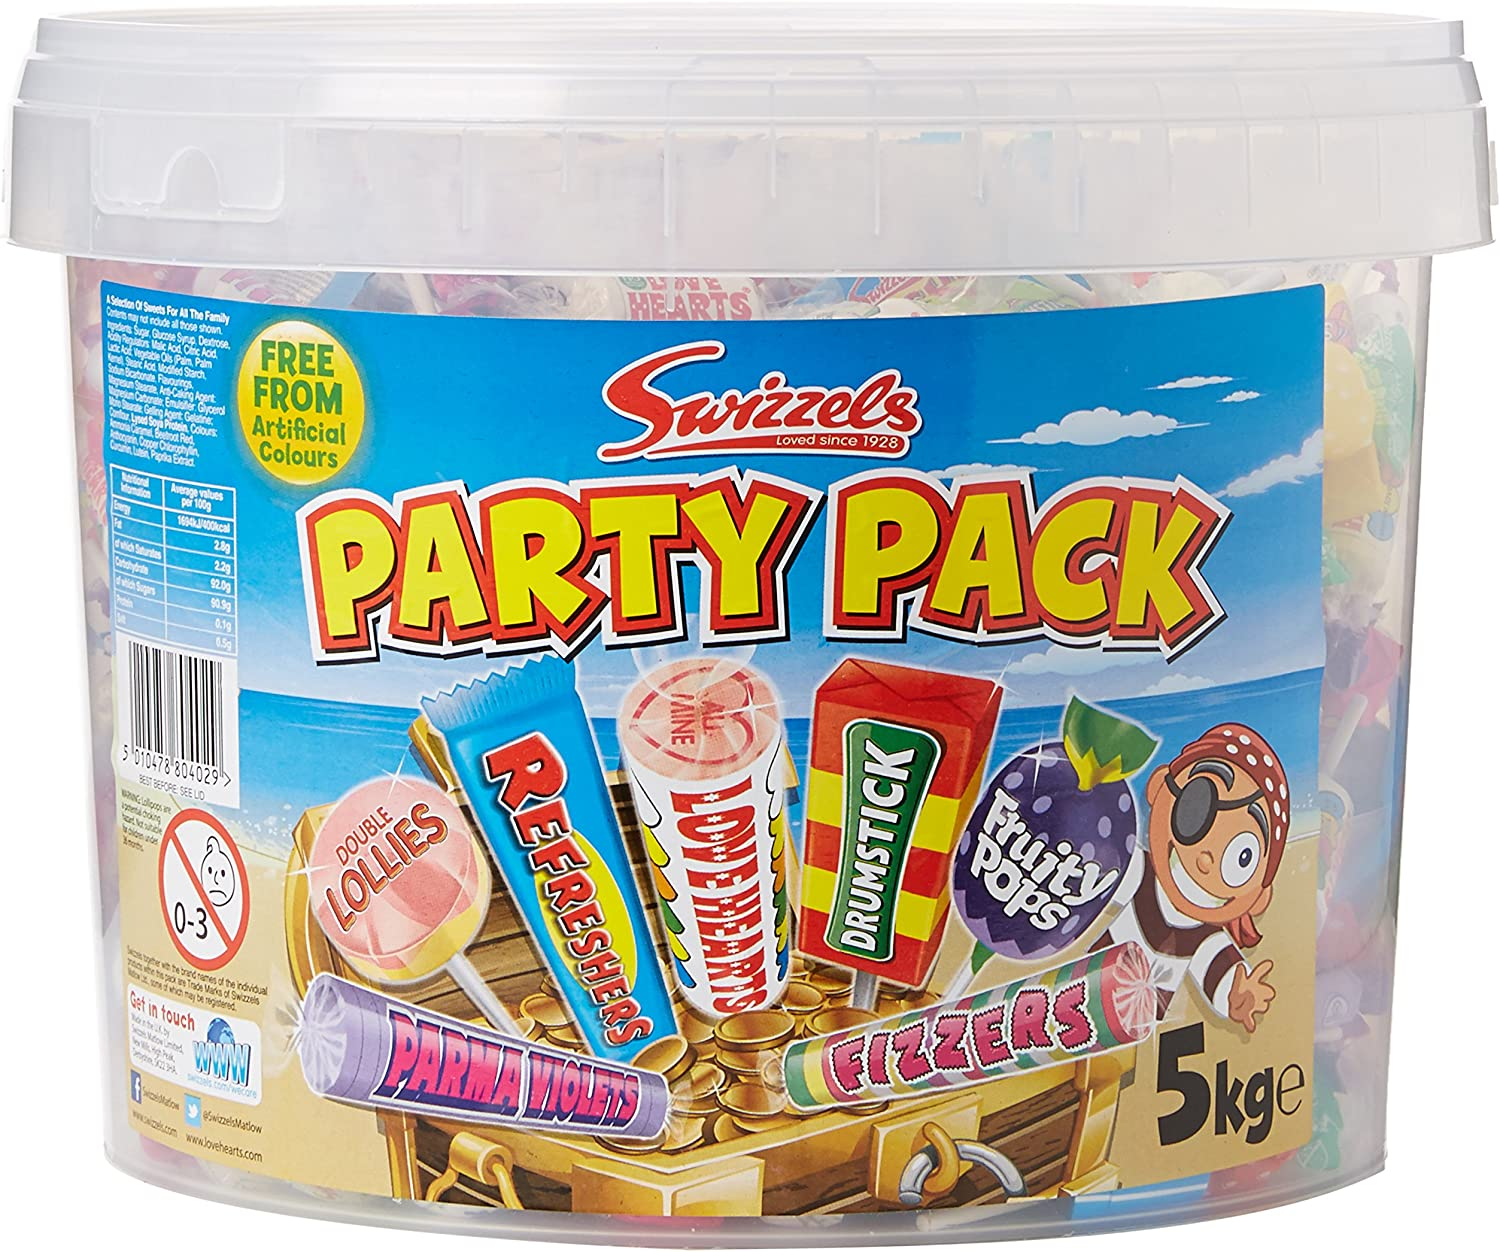 Swizzels Matlow Party Mix - 5kg bucket of retro childhood sweets